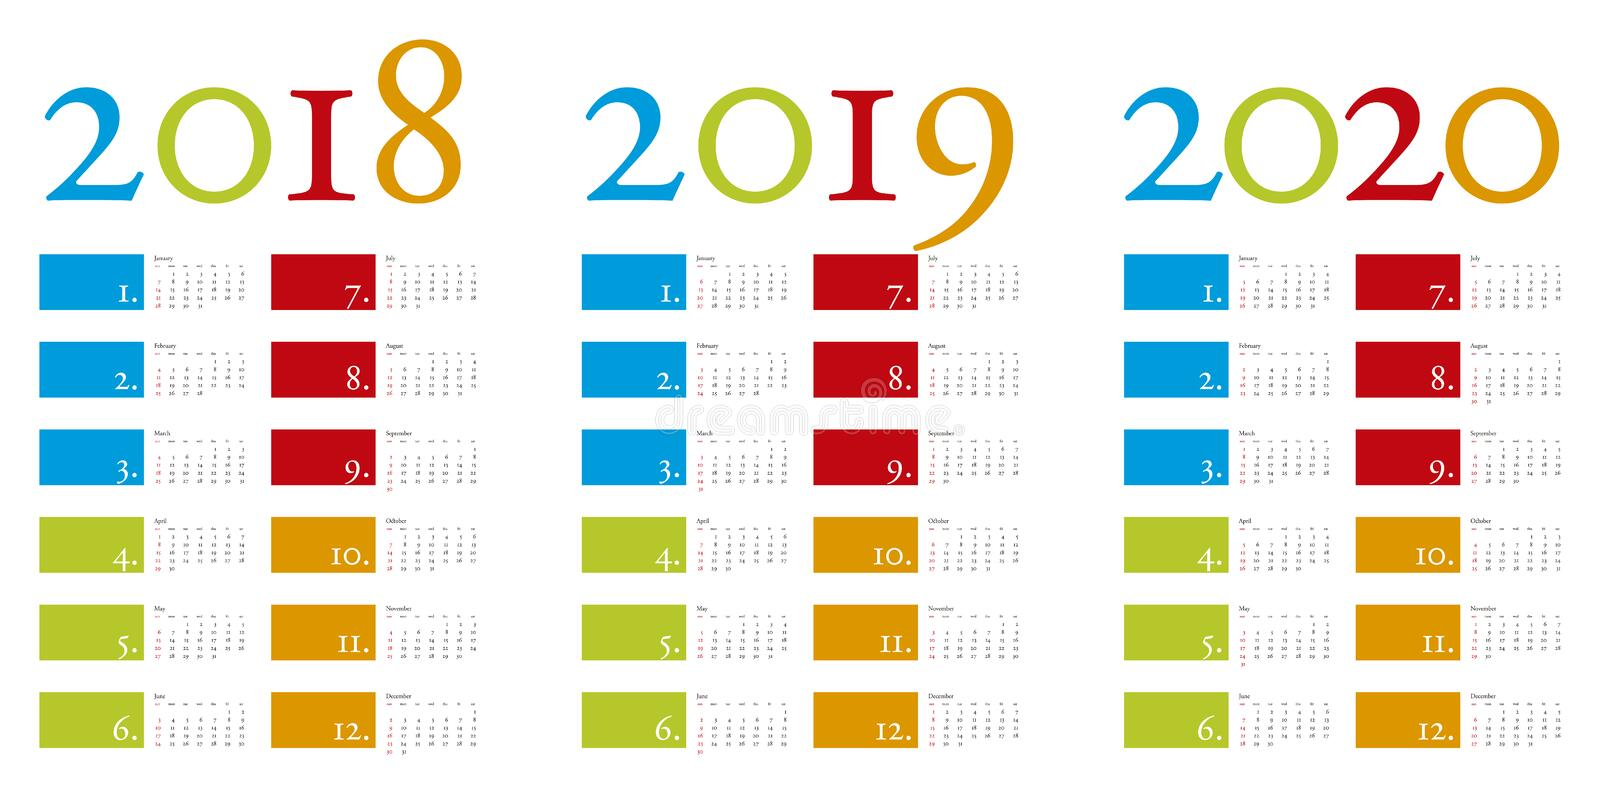 Colorful and elegant Calendar for years 2018, 2019 and 2020 vector illustration